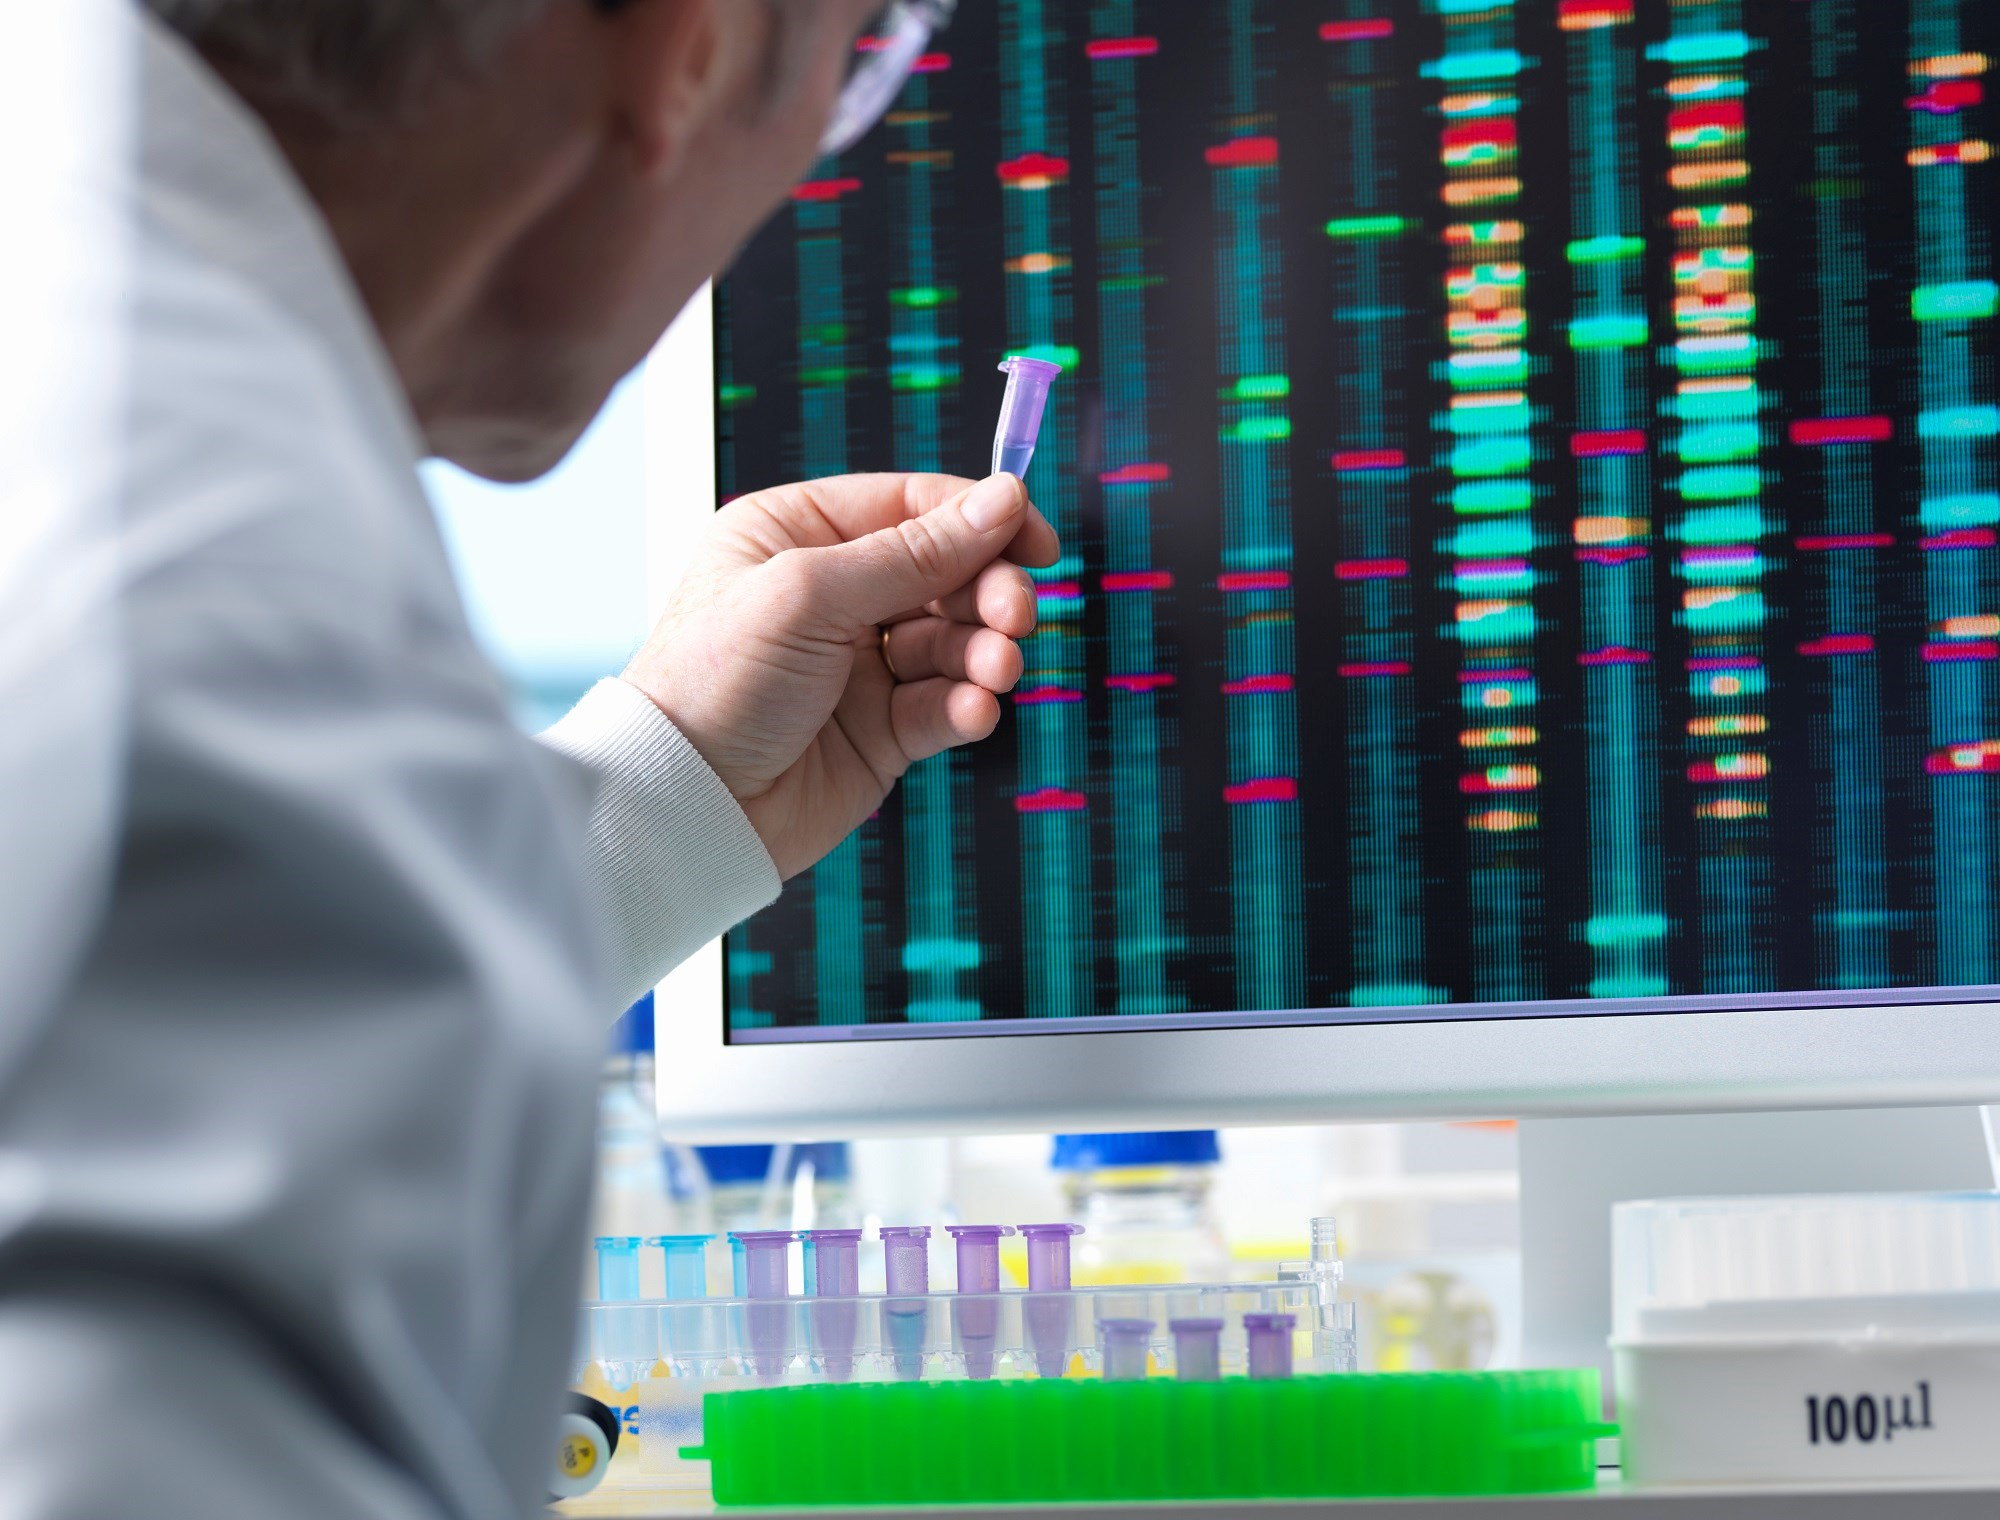 Genomic Sequencing Can Identify Disease Risk for Actionable, Early-Onset Conditions